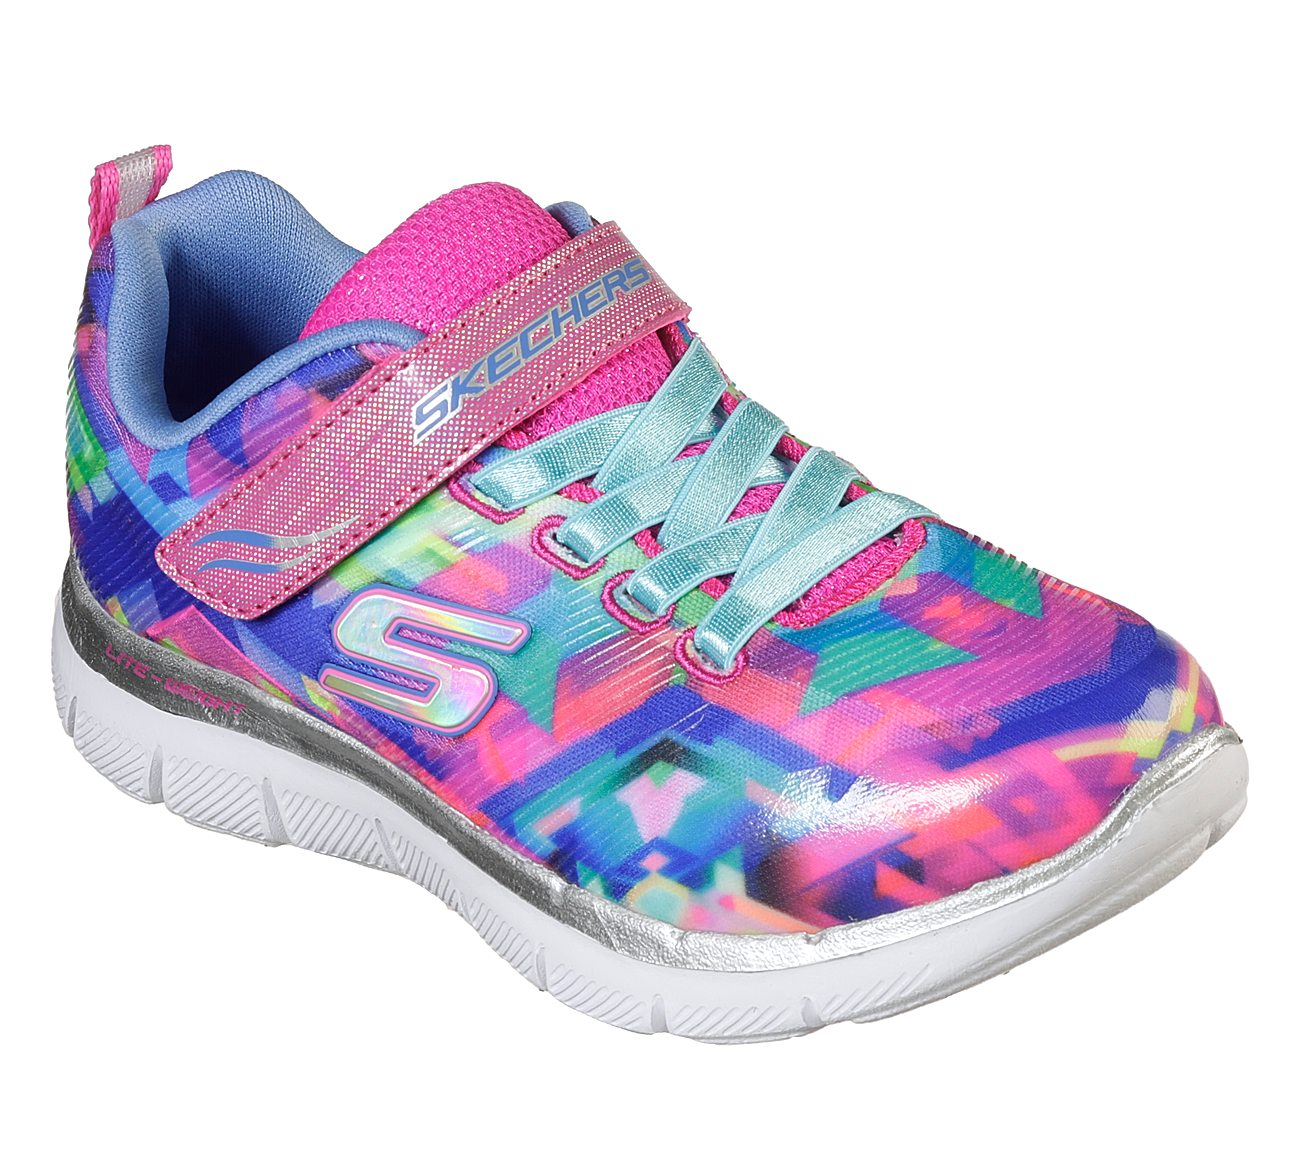 81f3a5f1622f Buy SKECHERS Skech Appeal 2.0 - Color Me Sport Shoes only  47.00